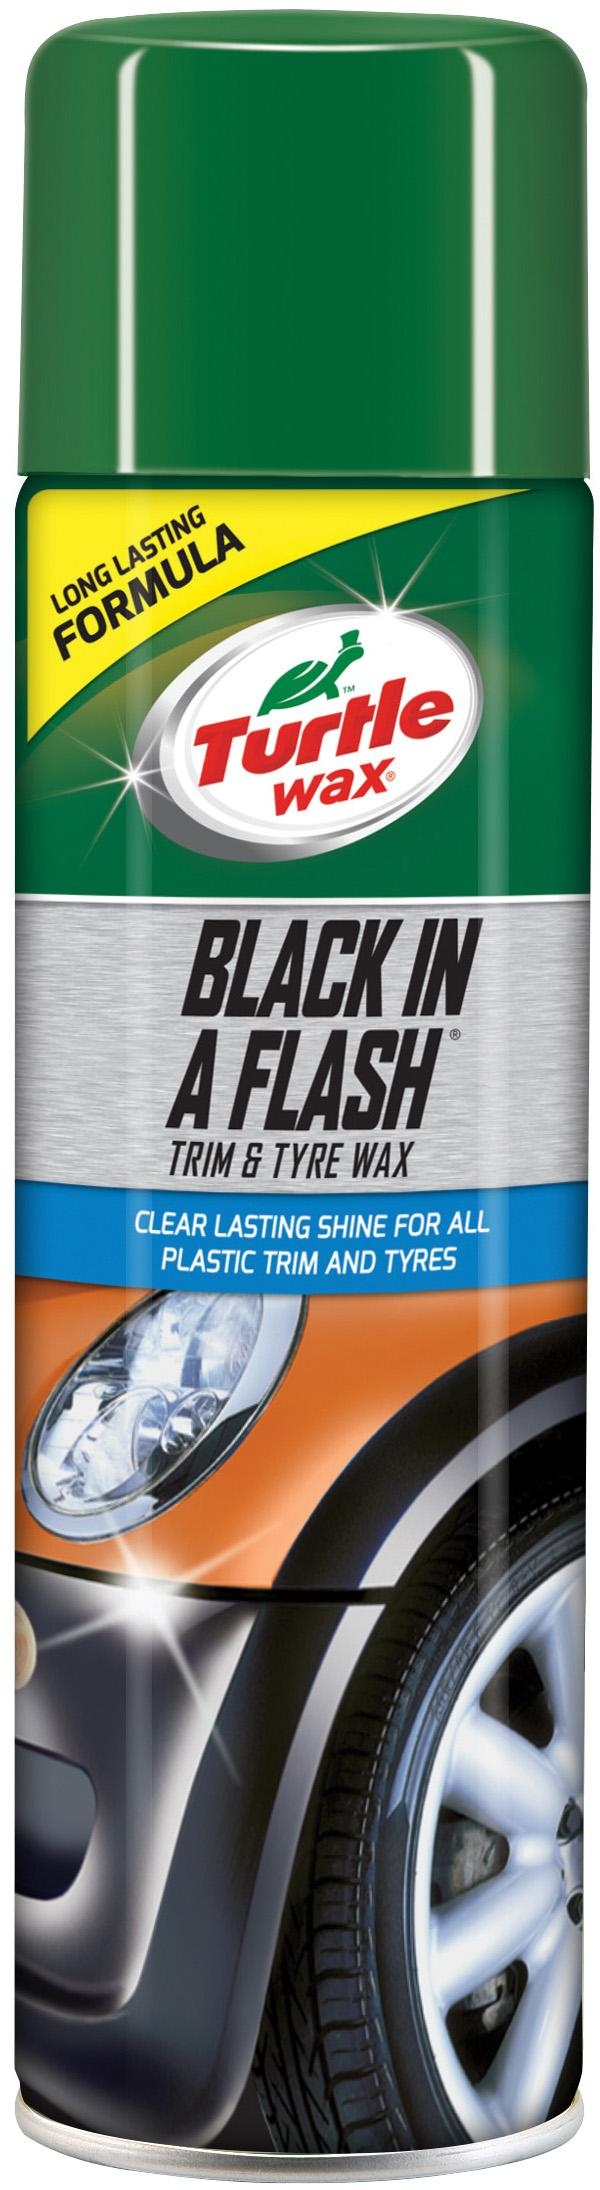 Turtle Wax Black In a Flash Gloss 500ml lowest price